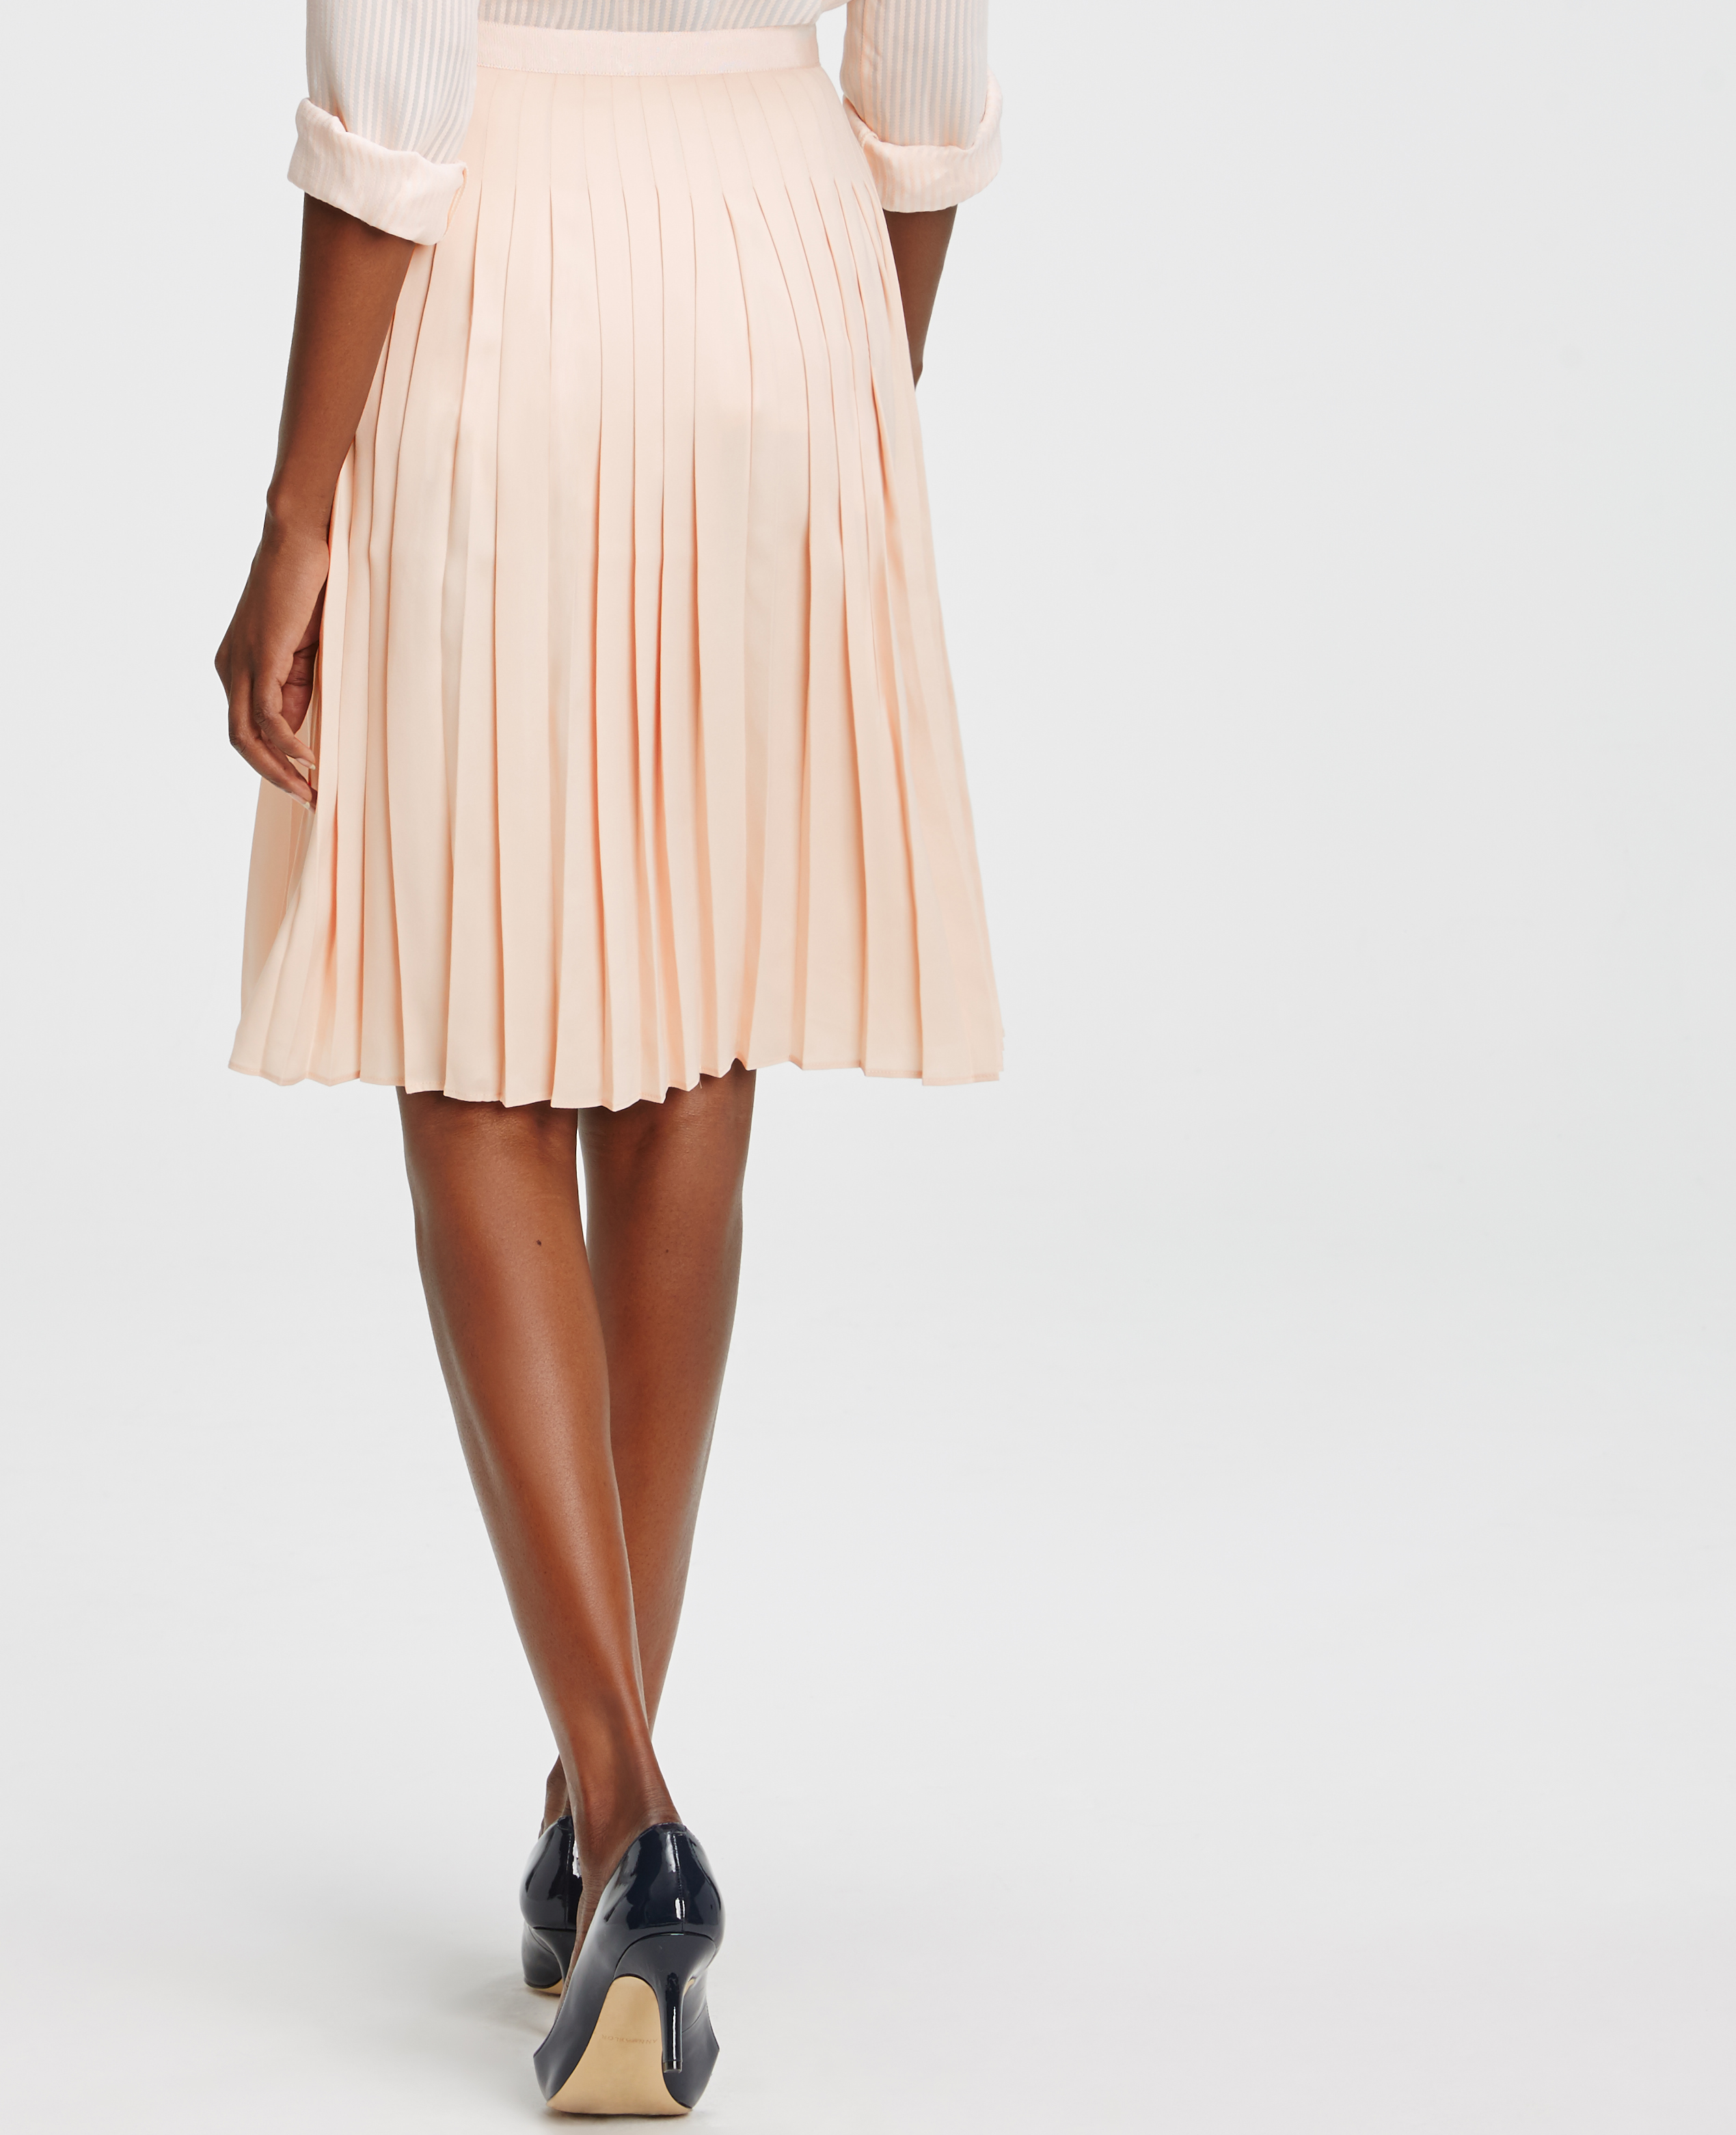 Ann taylor Petite Pleated Full Skirt in Pink | Lyst